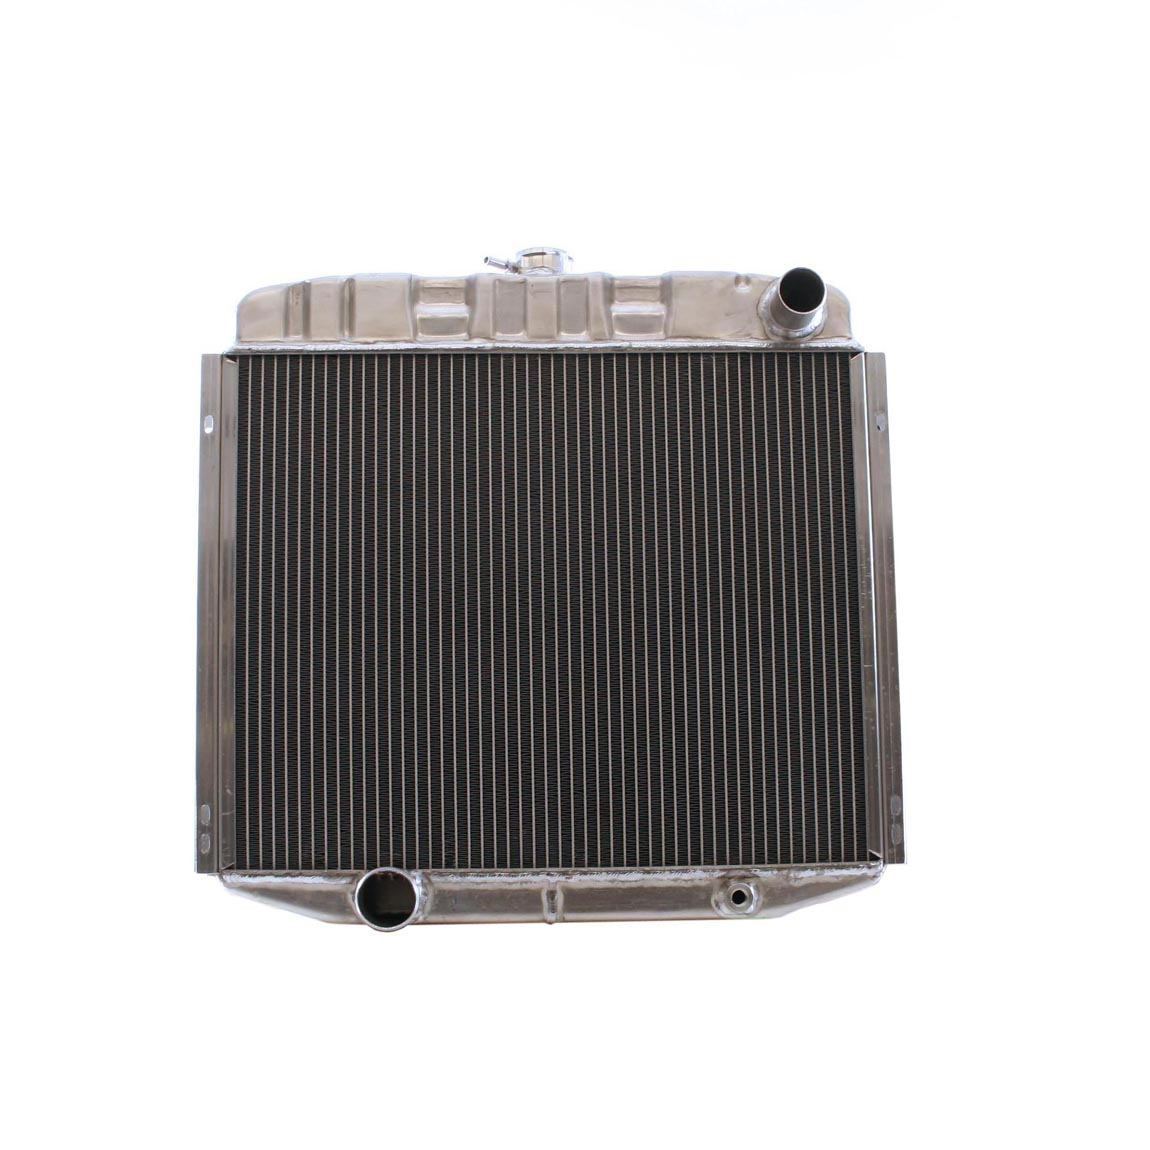 1968 Ford Mustang Griffin Aluminum Radiator - Part Number 7-00036